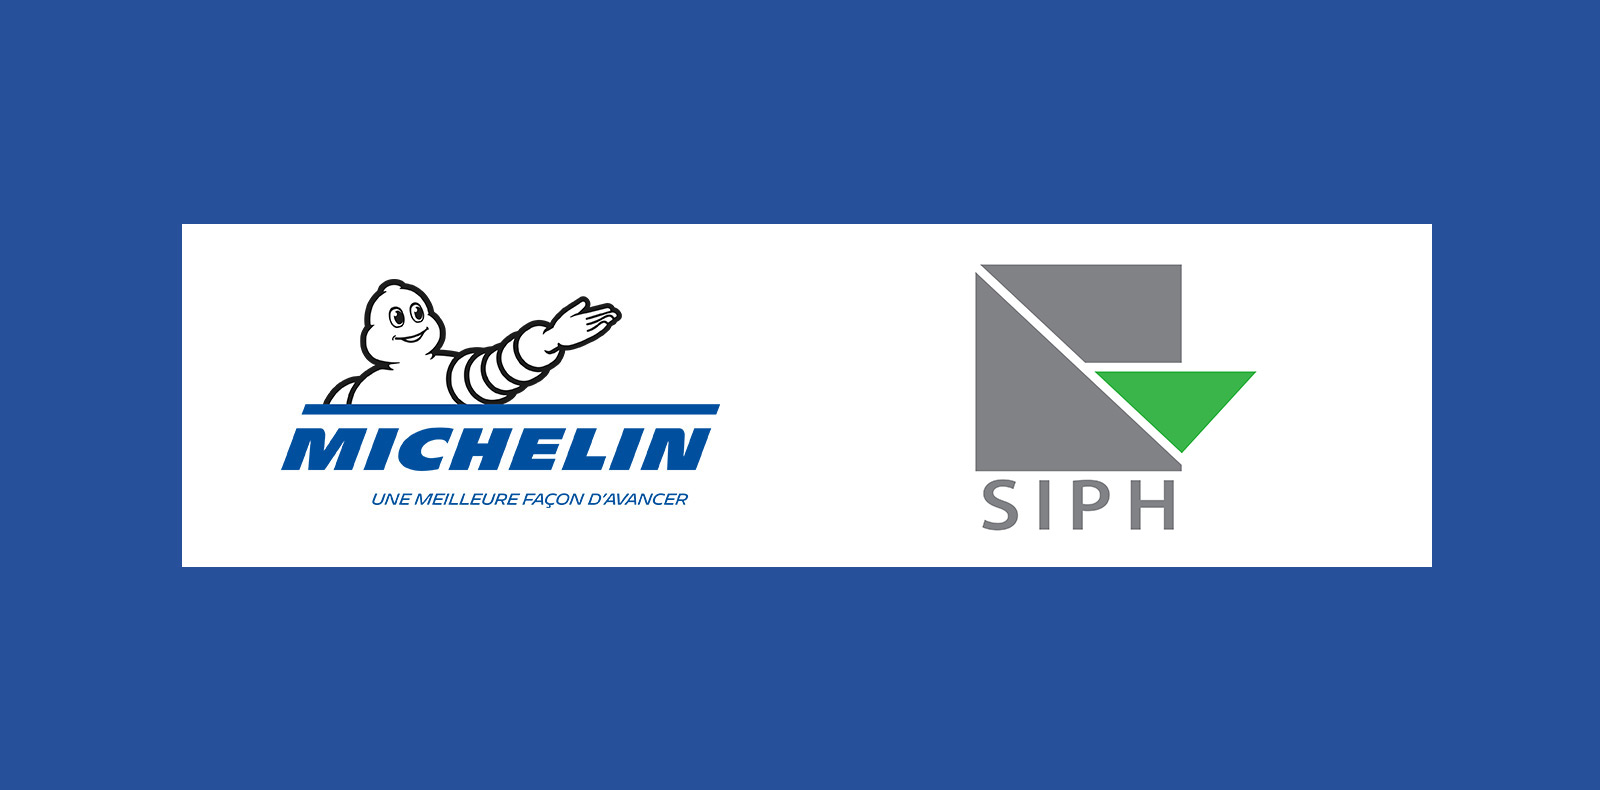 Buy-out offer to acquire the shares of SIPH